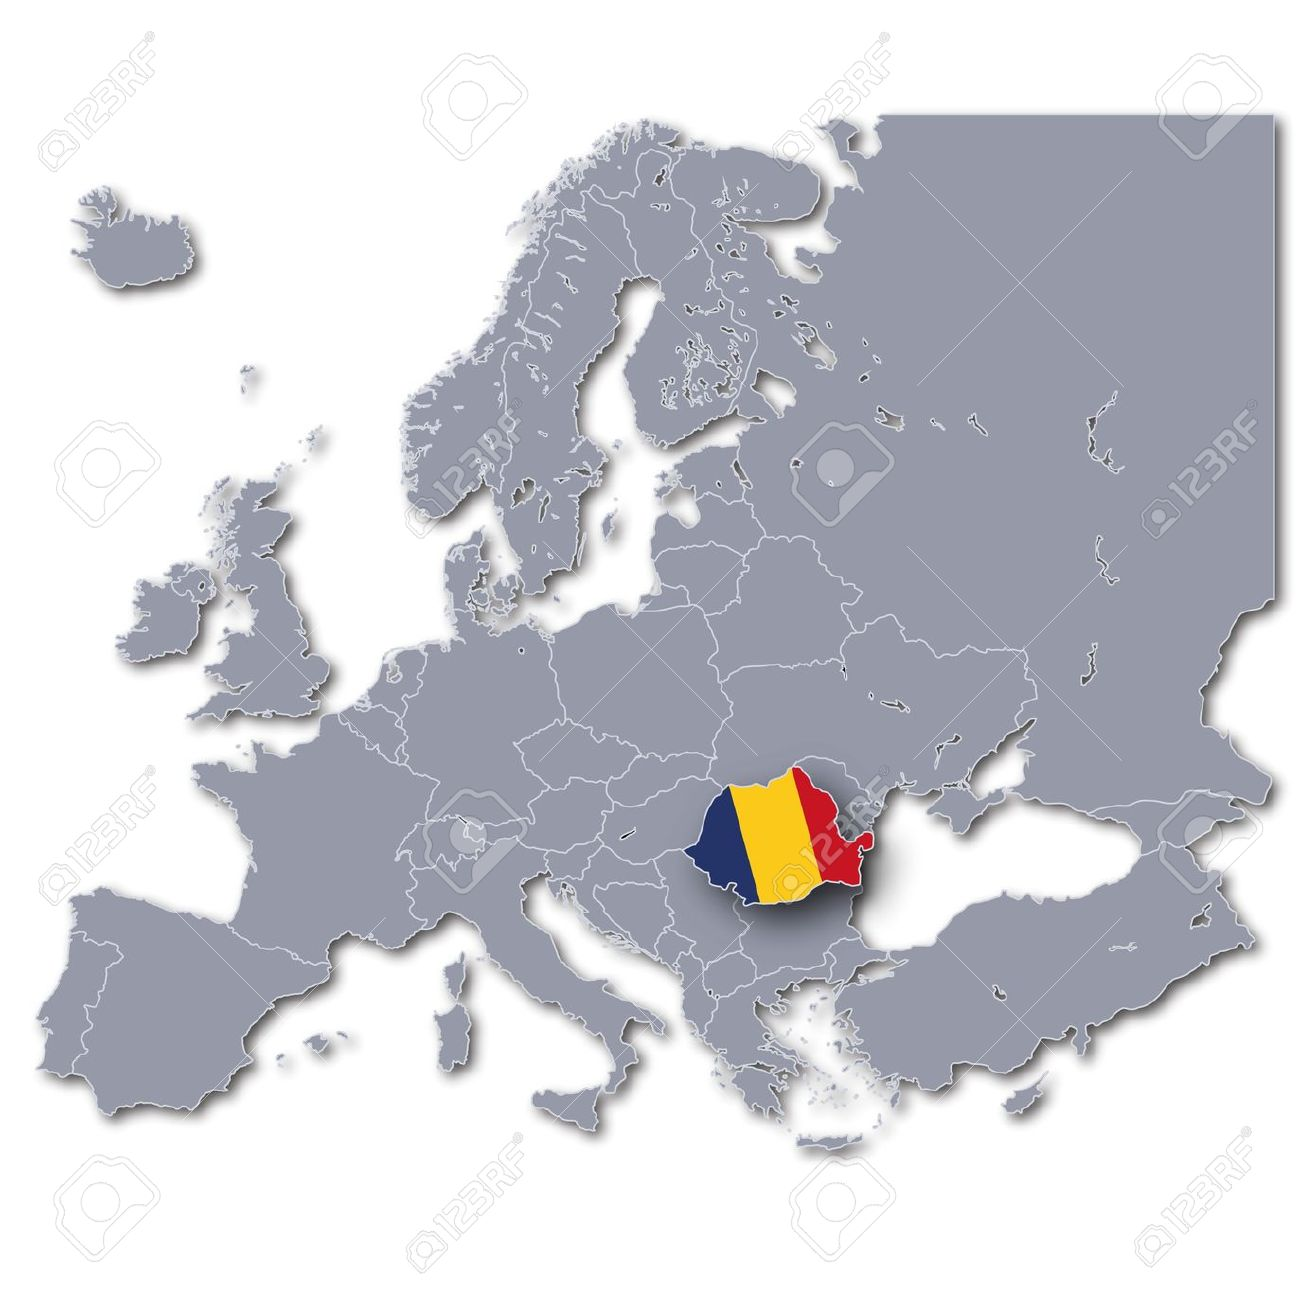 Map Romania Stock Photo, Picture And Royalty Free Image. Image 15389531.